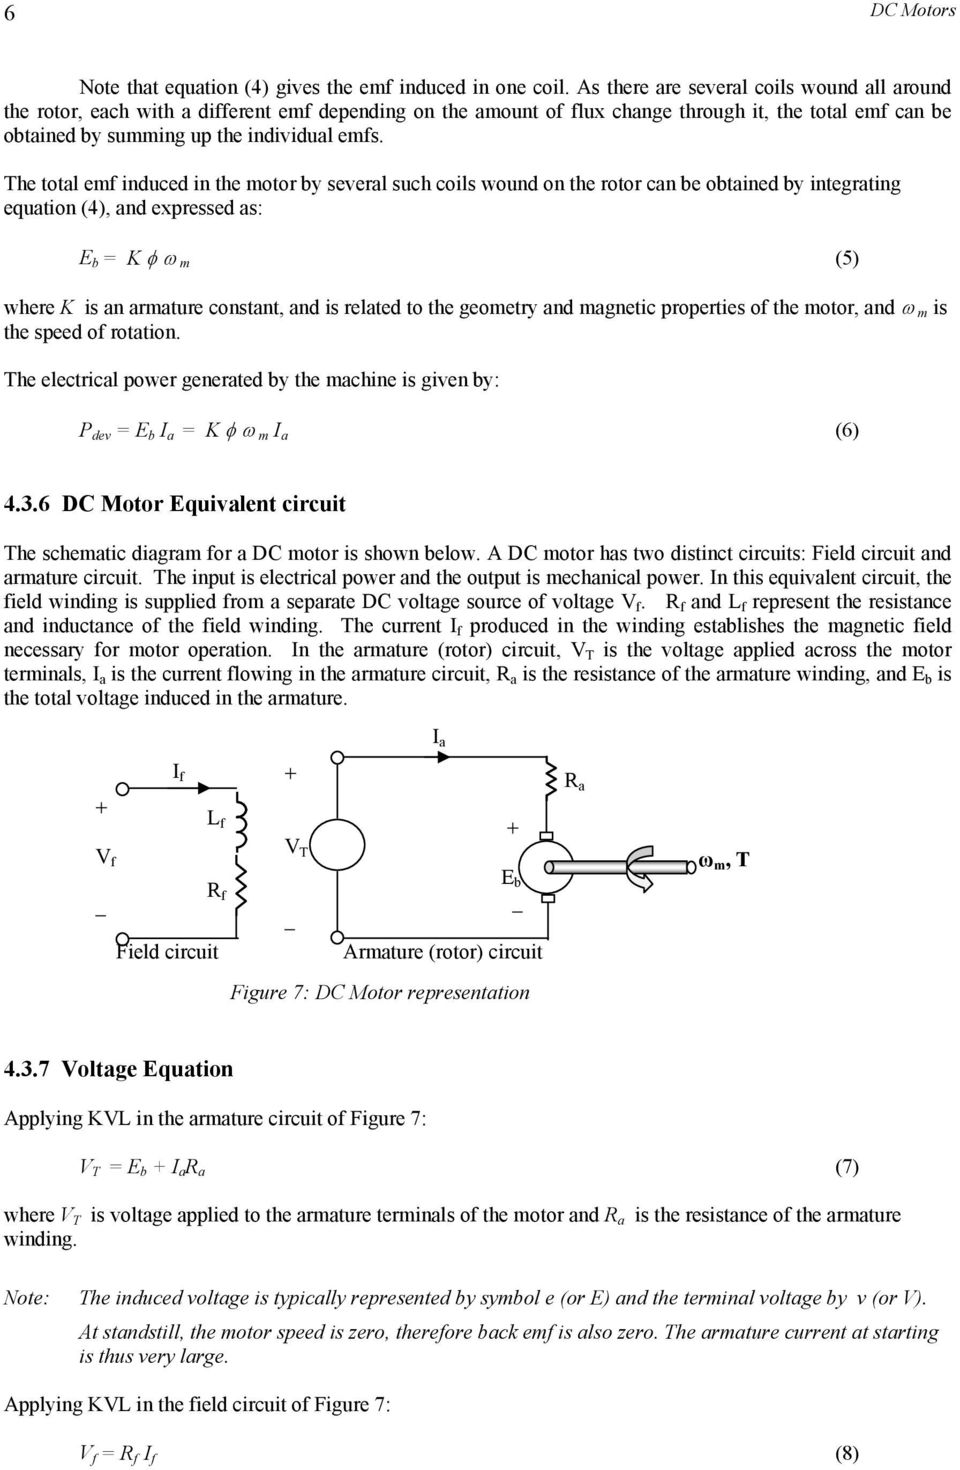 The totl em induced in the motor by severl such coils wound on the rotor cn be obtined by integrting eqution (4), nd expressed s: E b = K m (5) where K is n rmture constnt, nd is relted to the